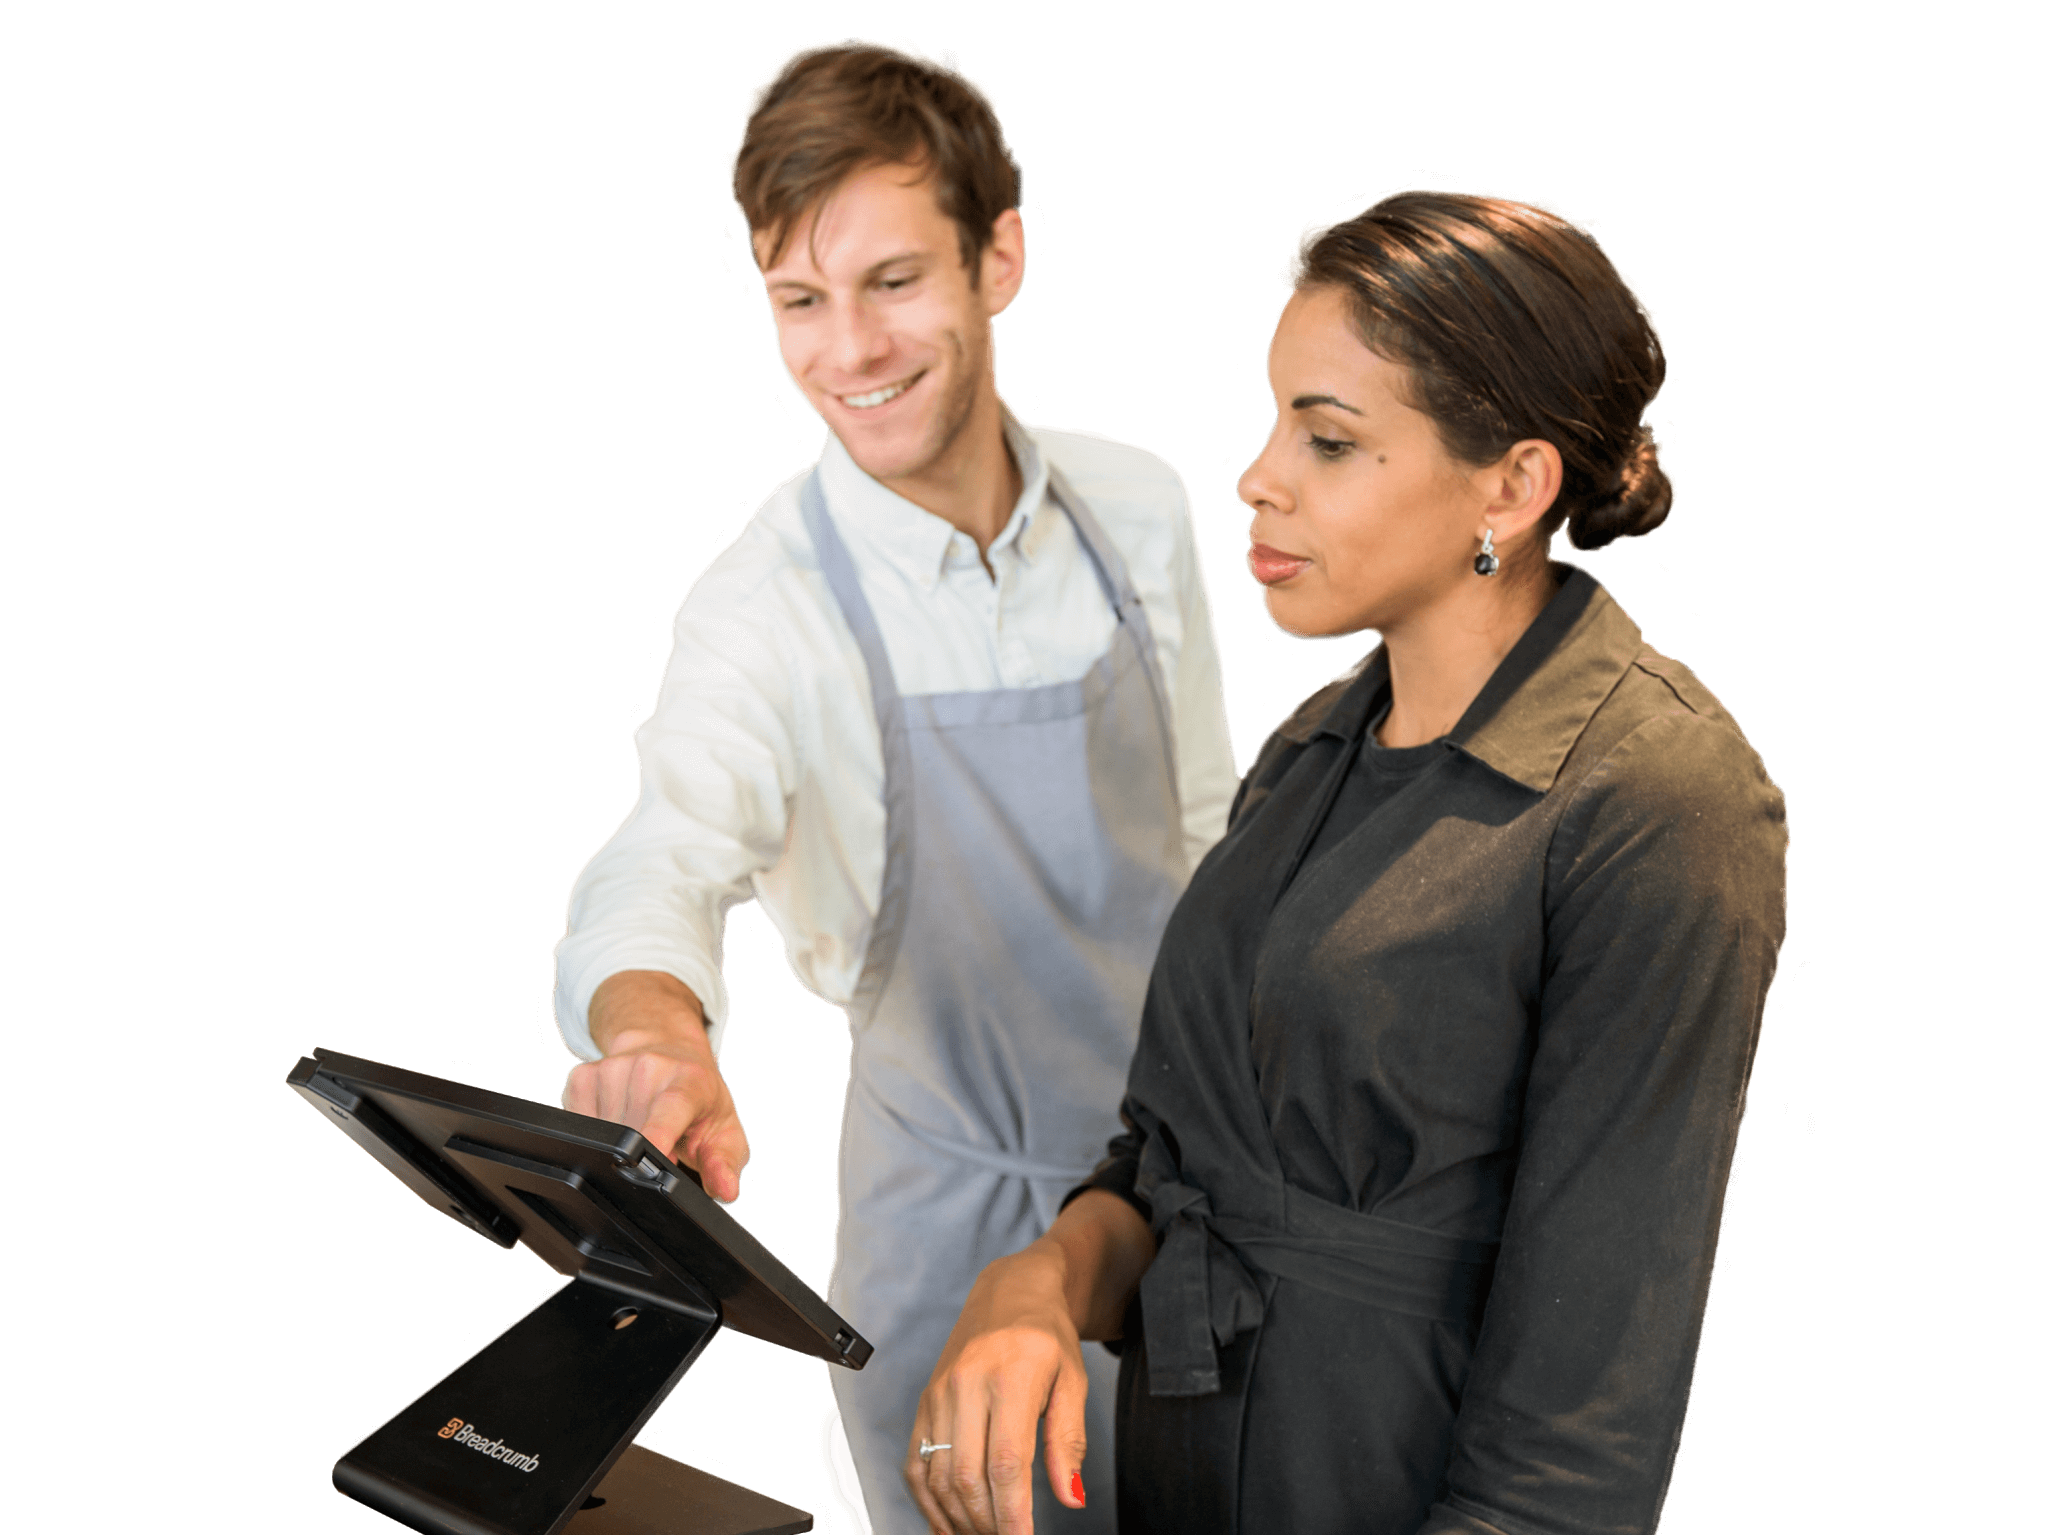 Breadcrumb POS training for new employees